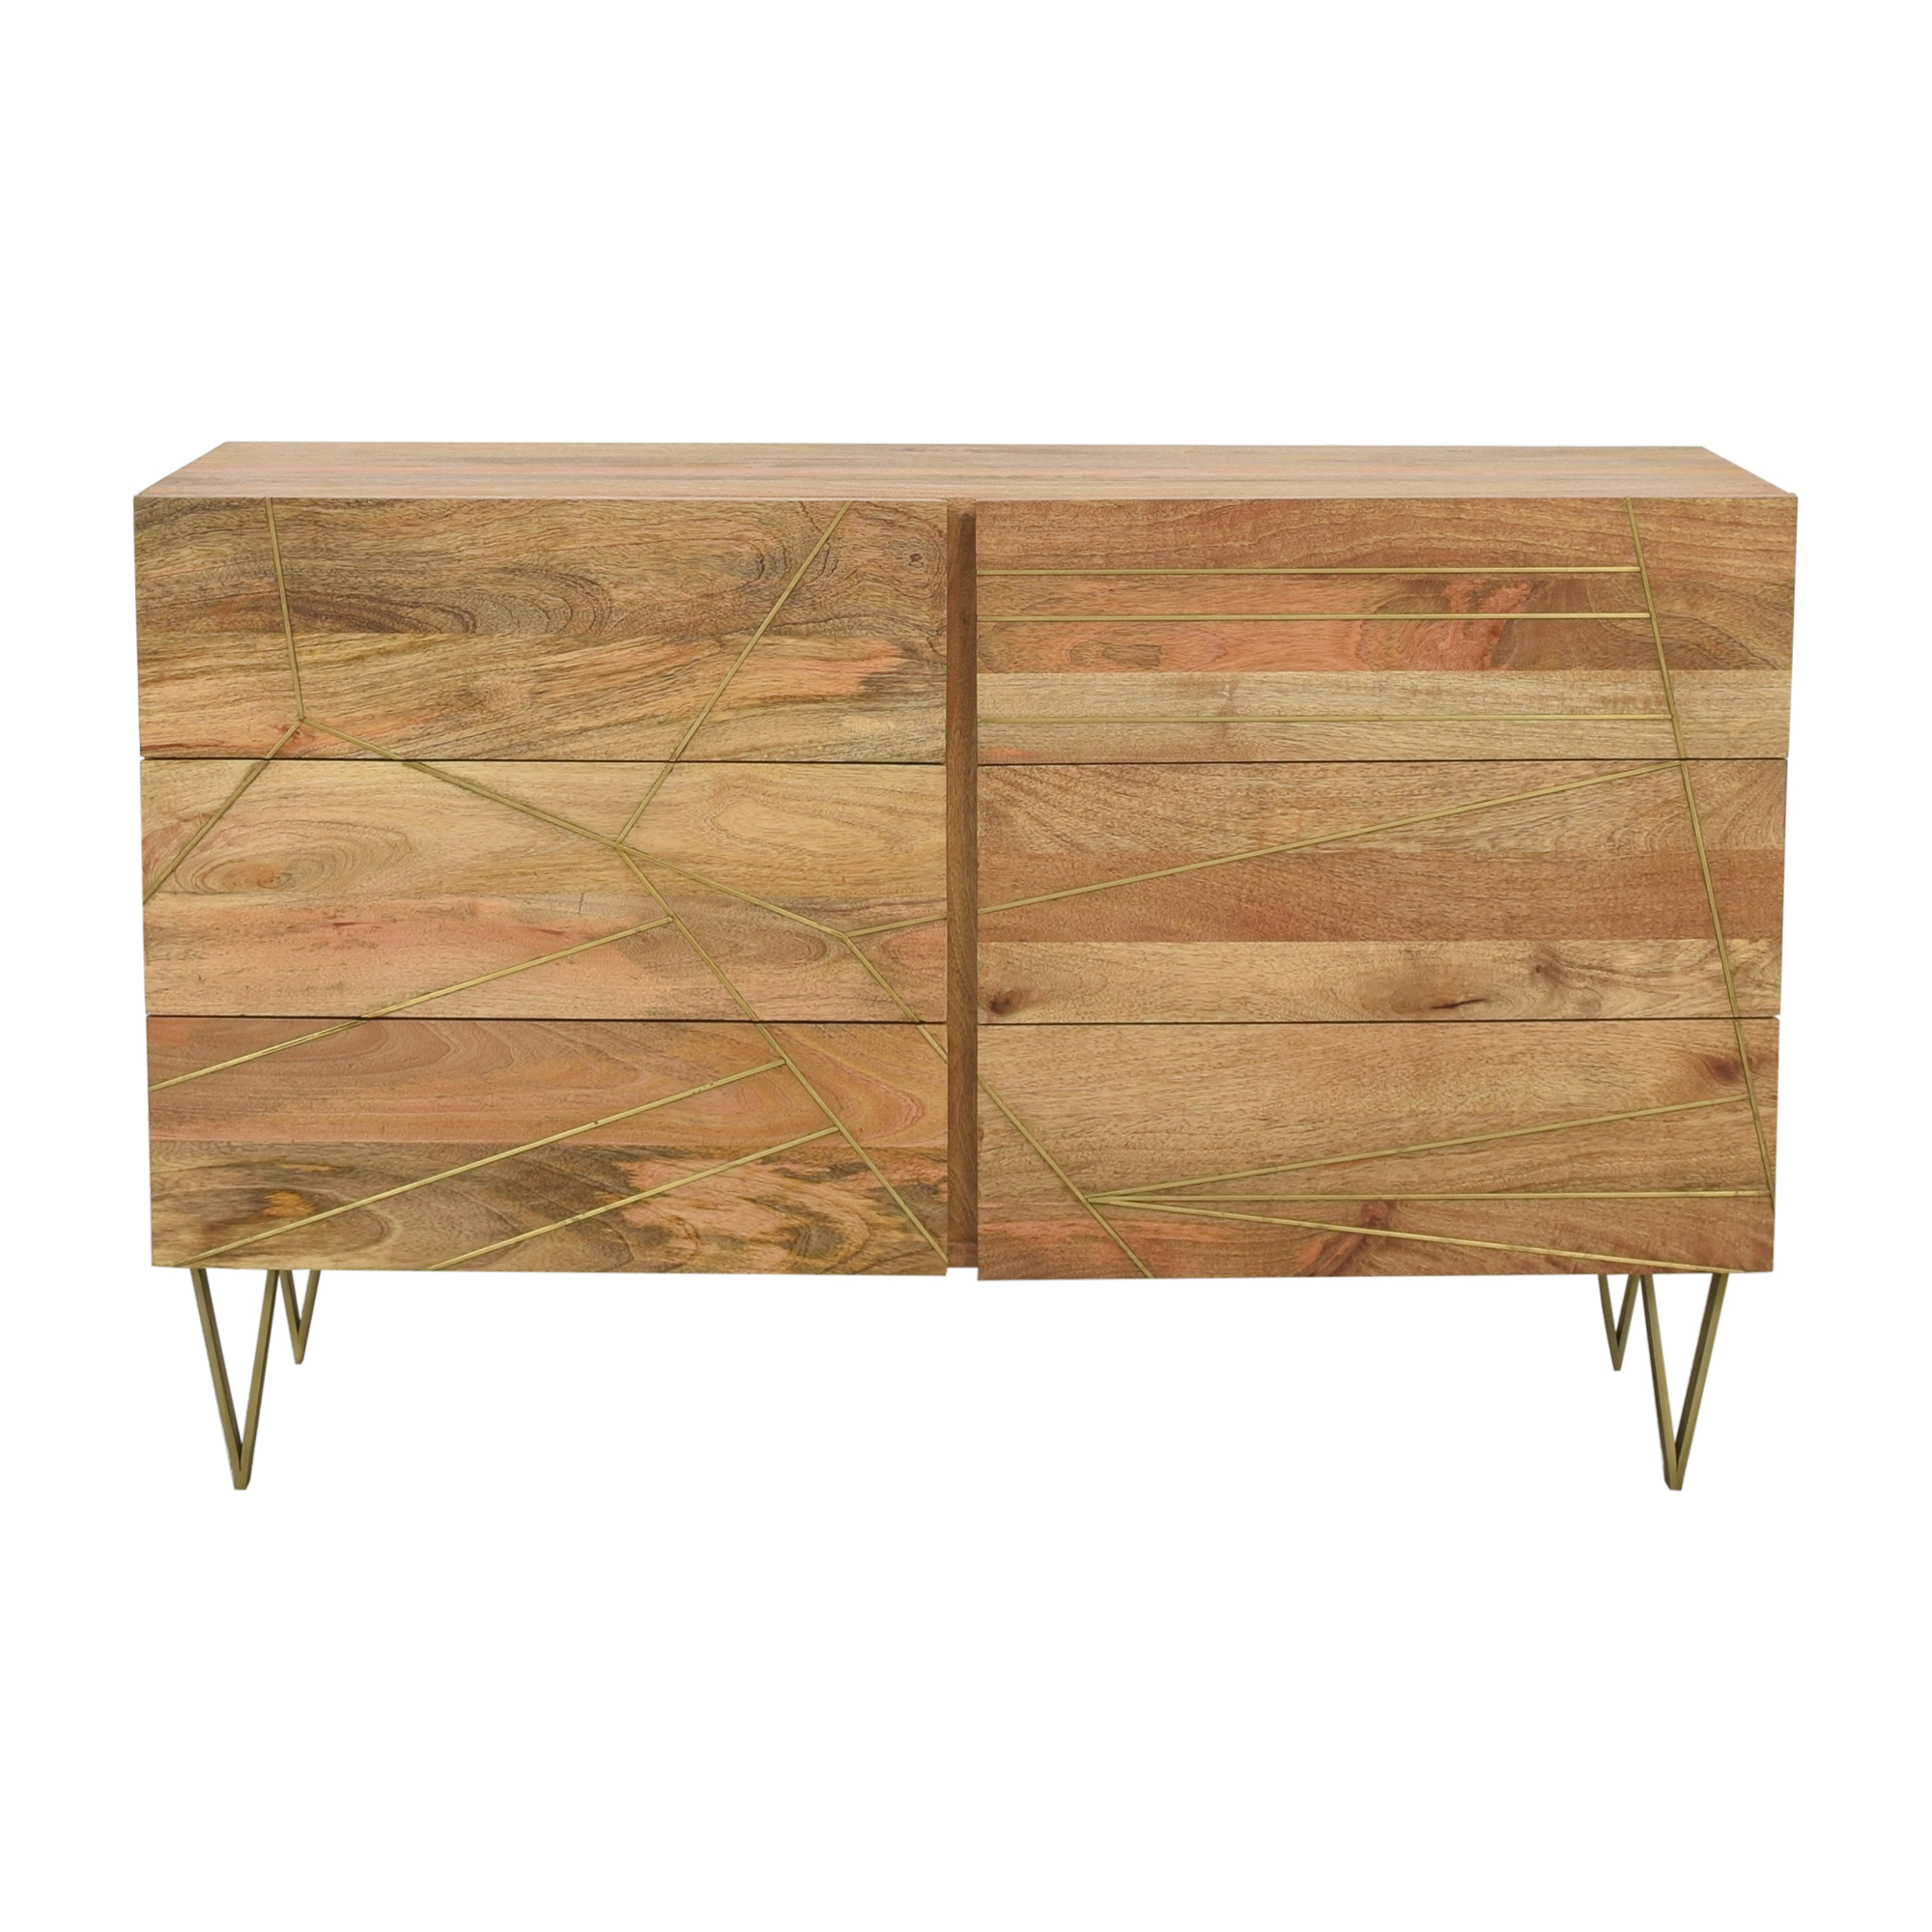 West Elm West Elm Roar & Rabbit Brass Geo Inlay 6-Drawer Dresser coupon